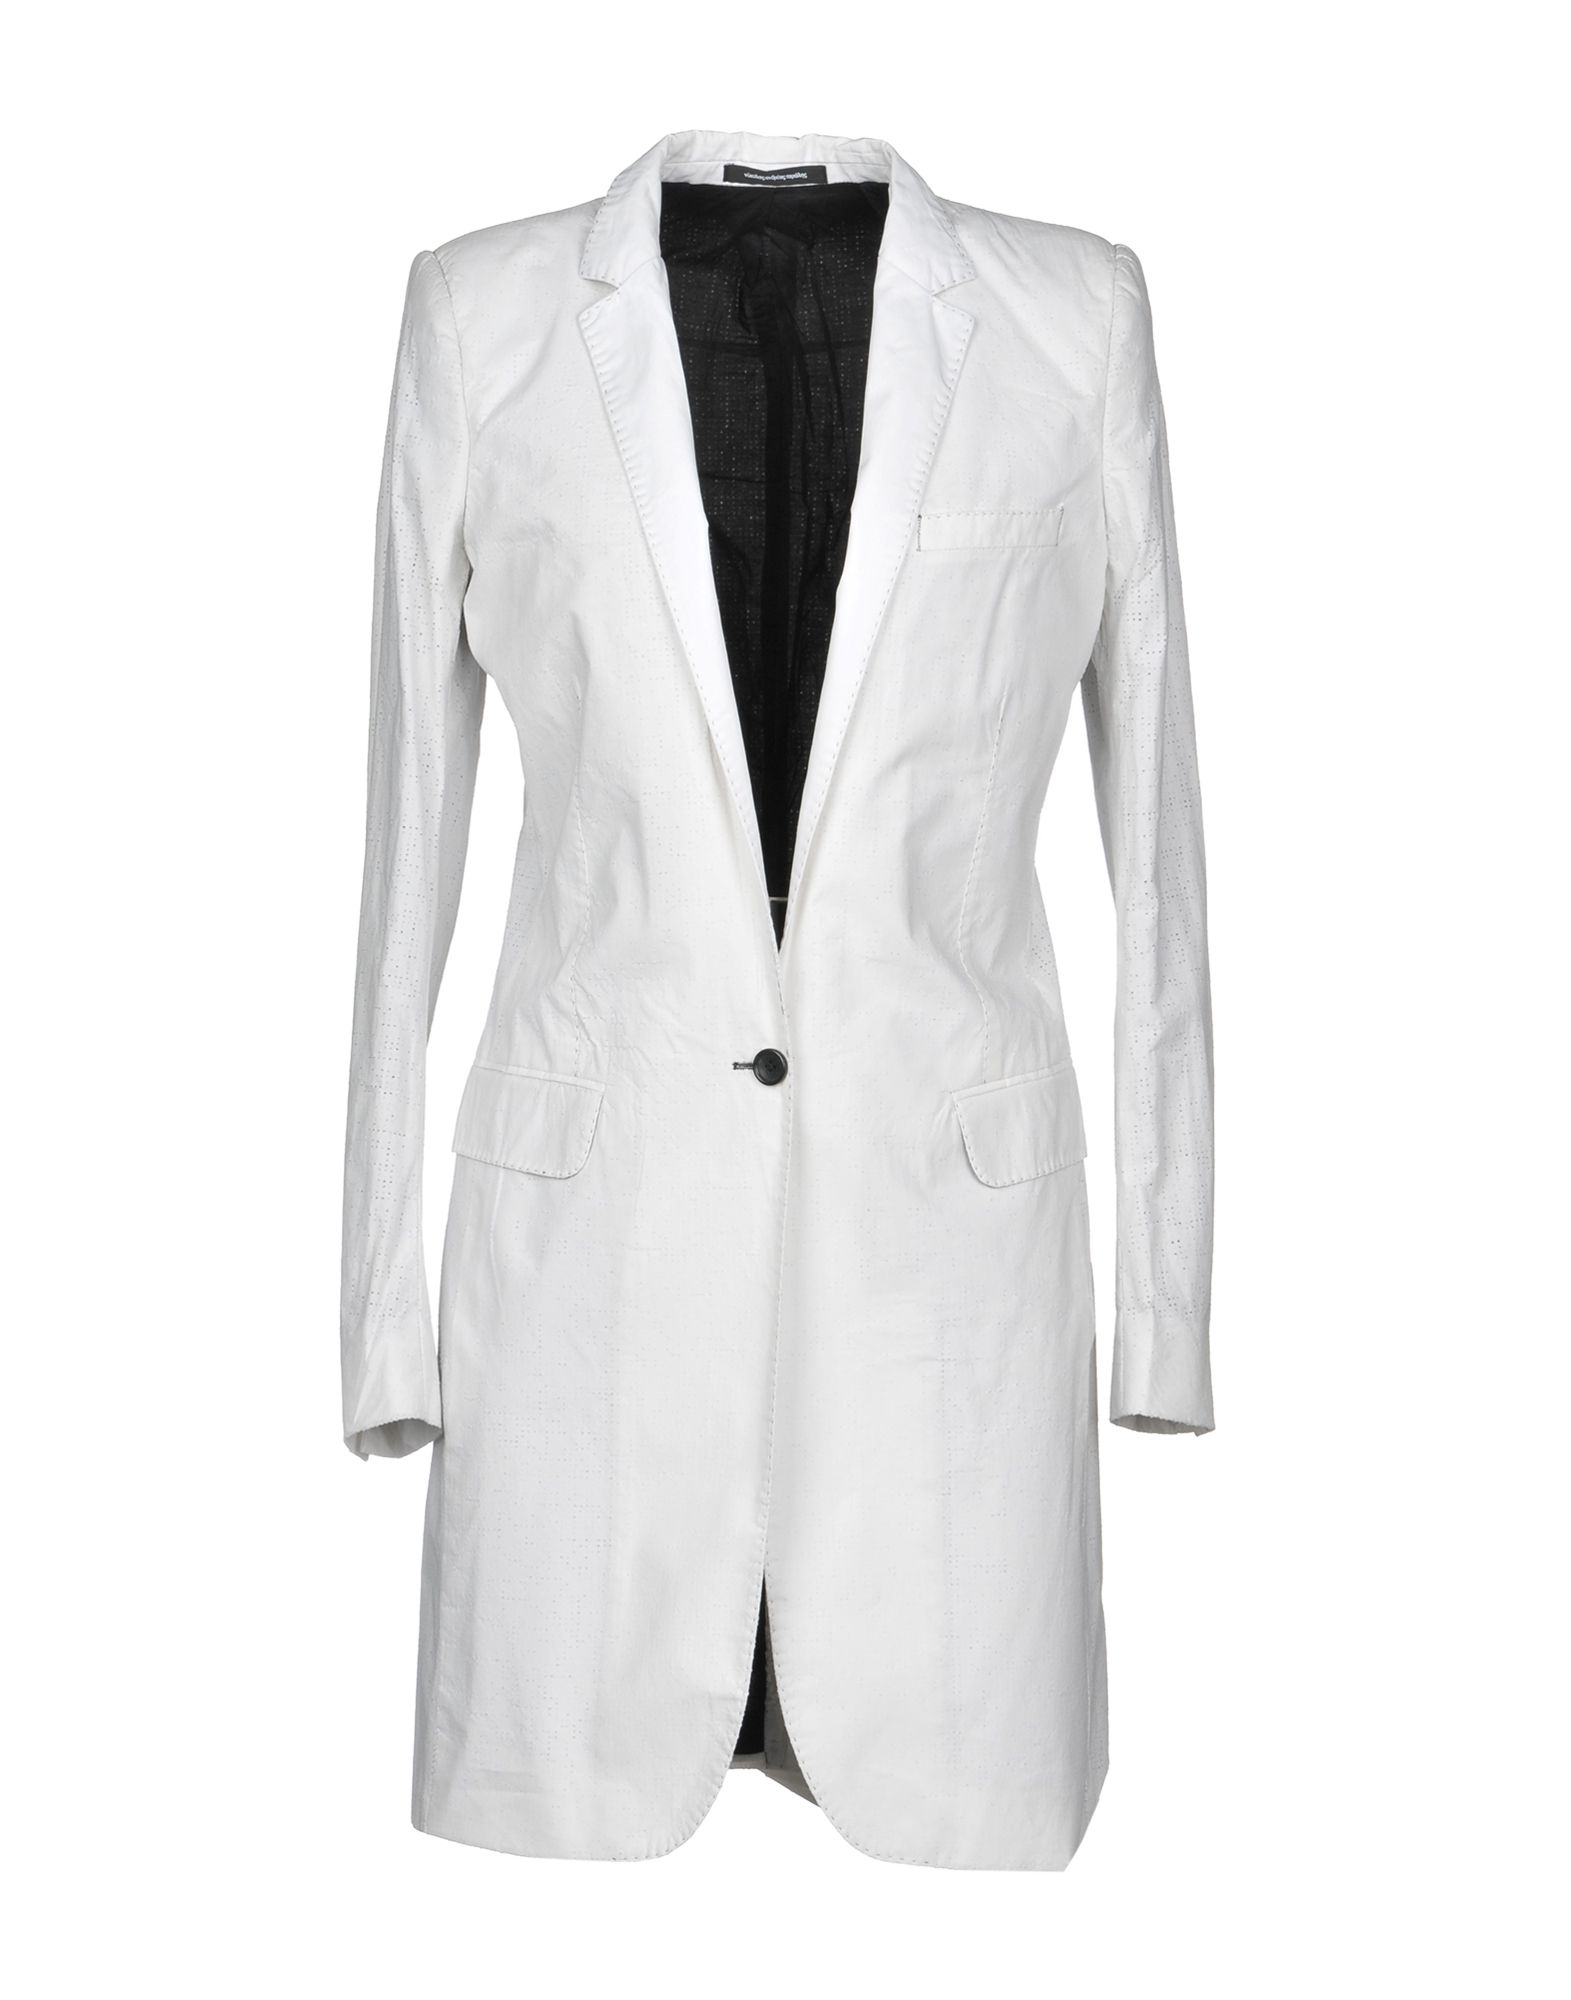 NICOLAS ANDREAS TARALIS Coat in White